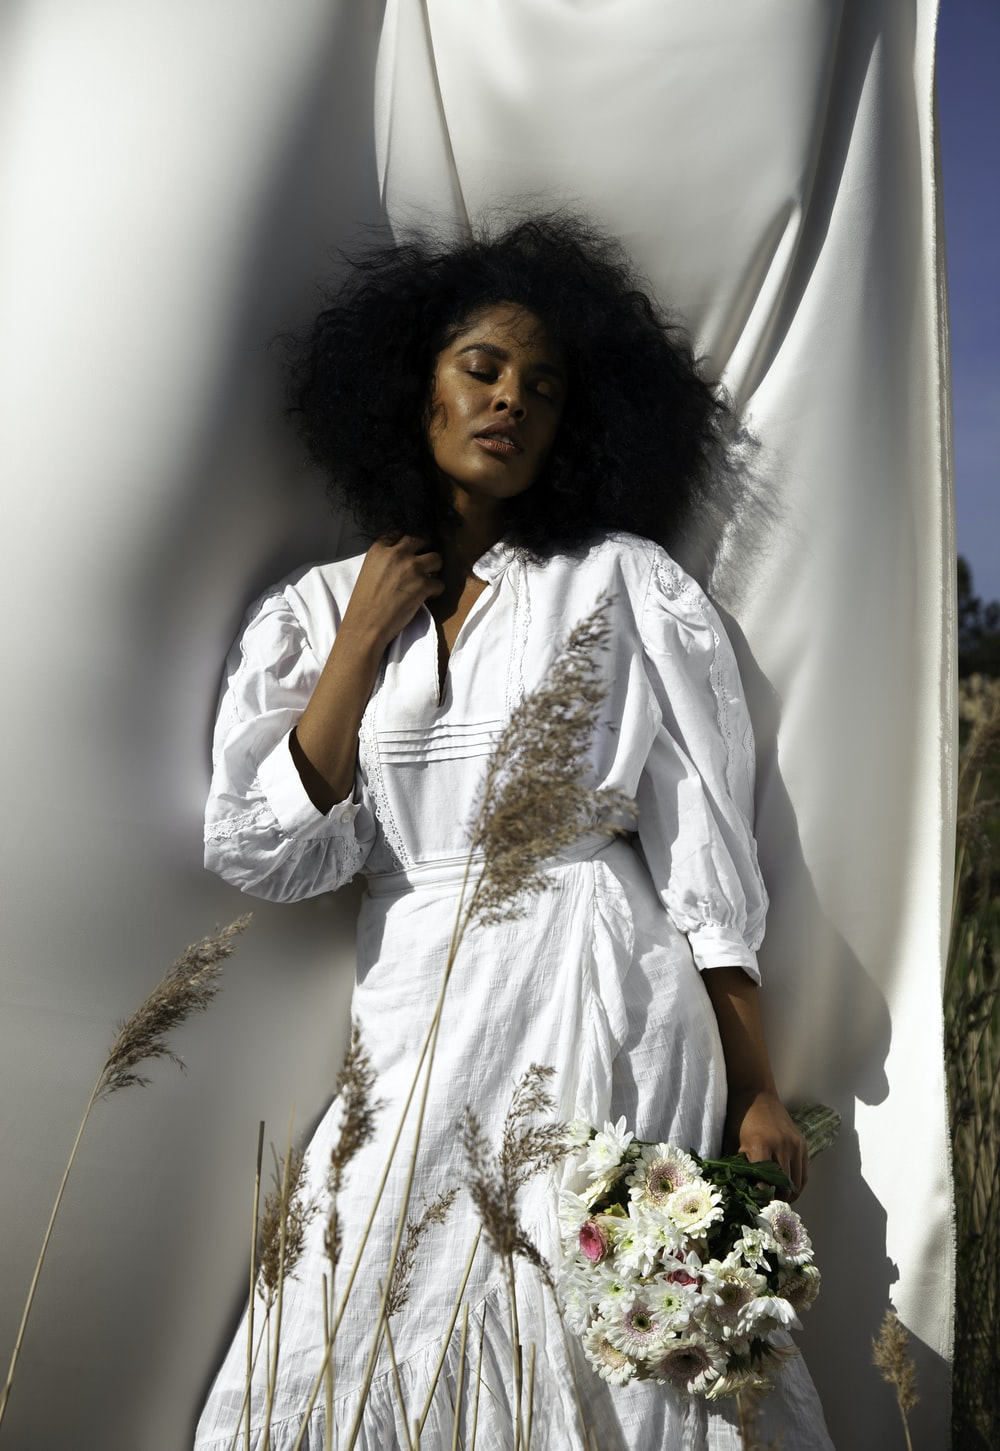 woman in white long sleeve shirt holding white flowers